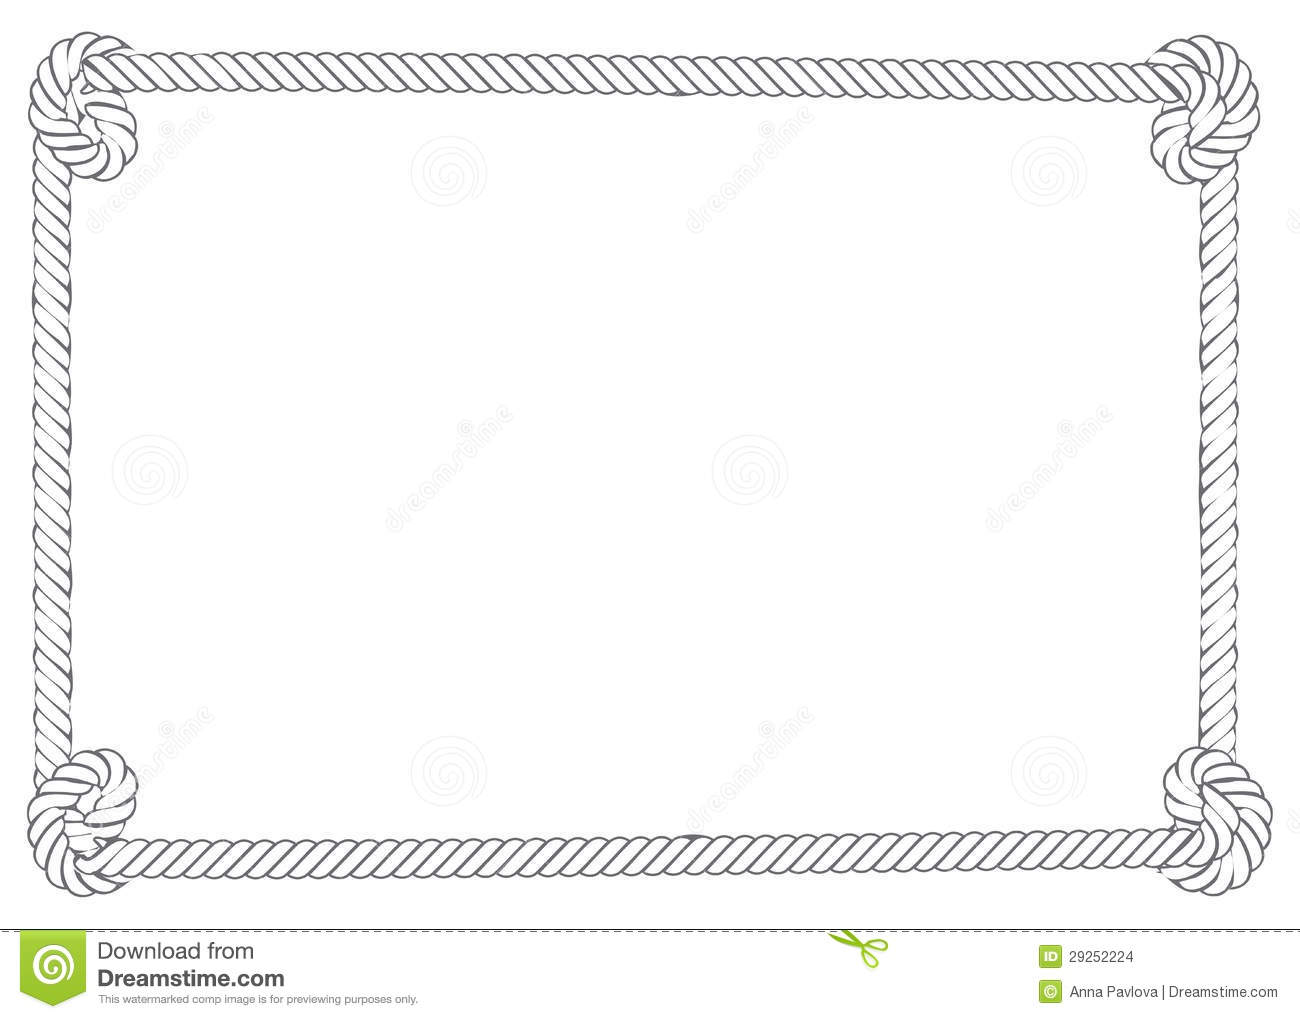 Nautical Rope Border Clip Art.